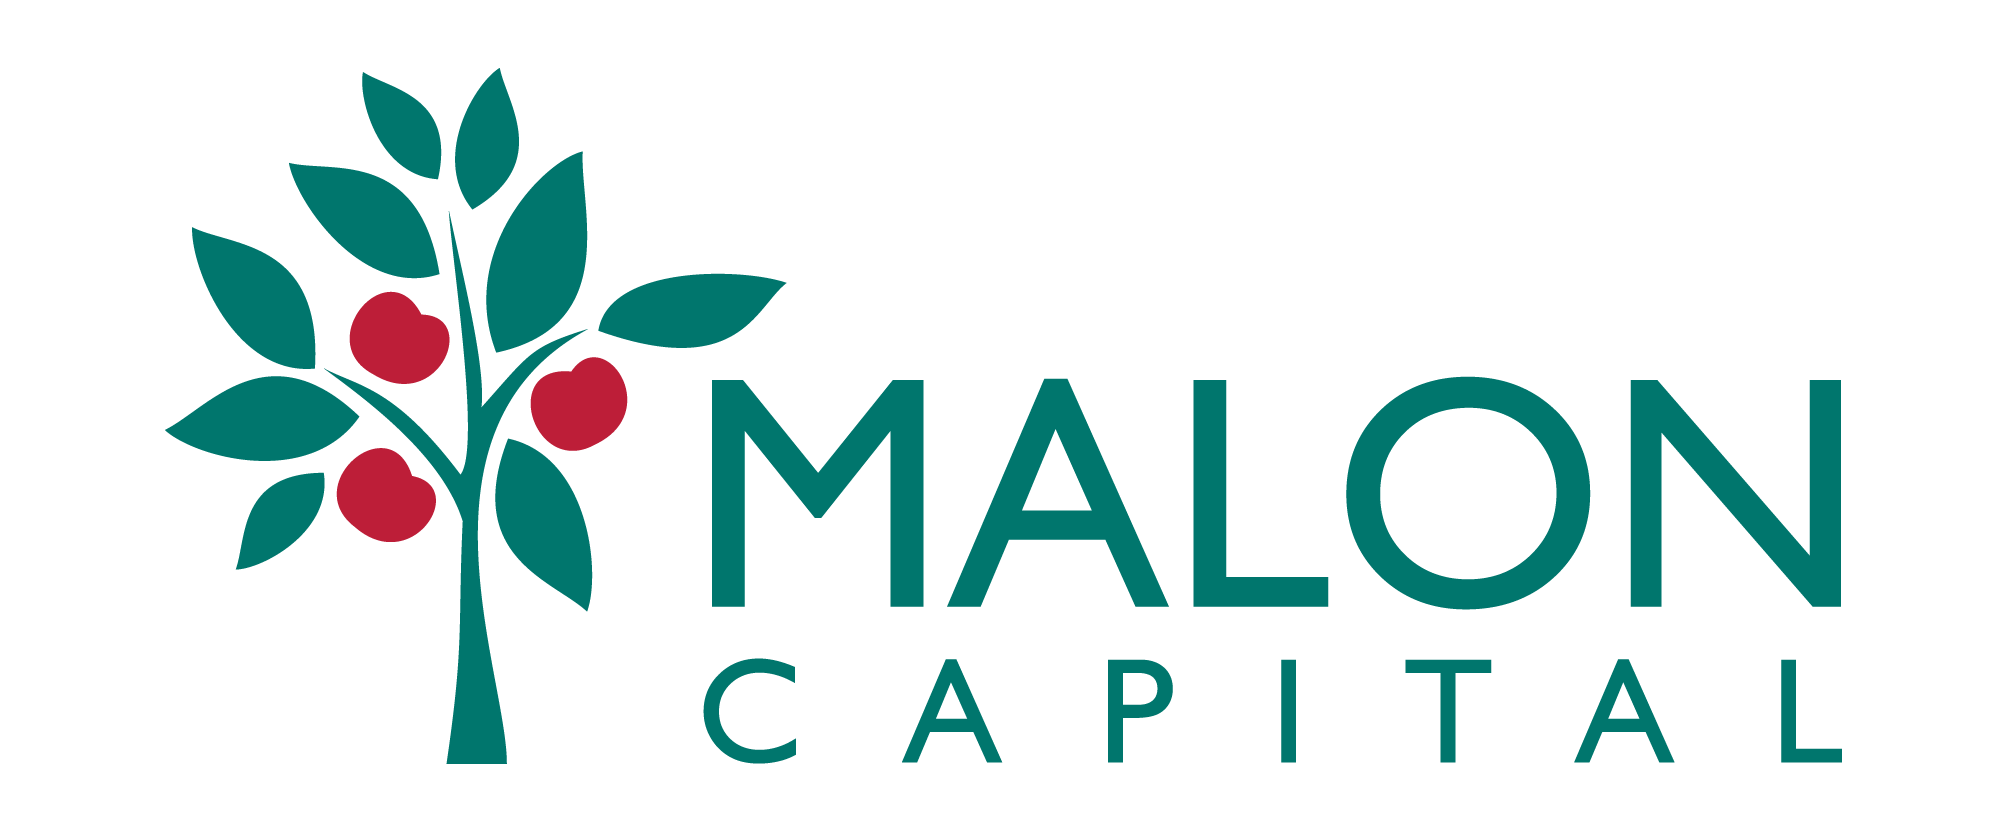 Malon Capital